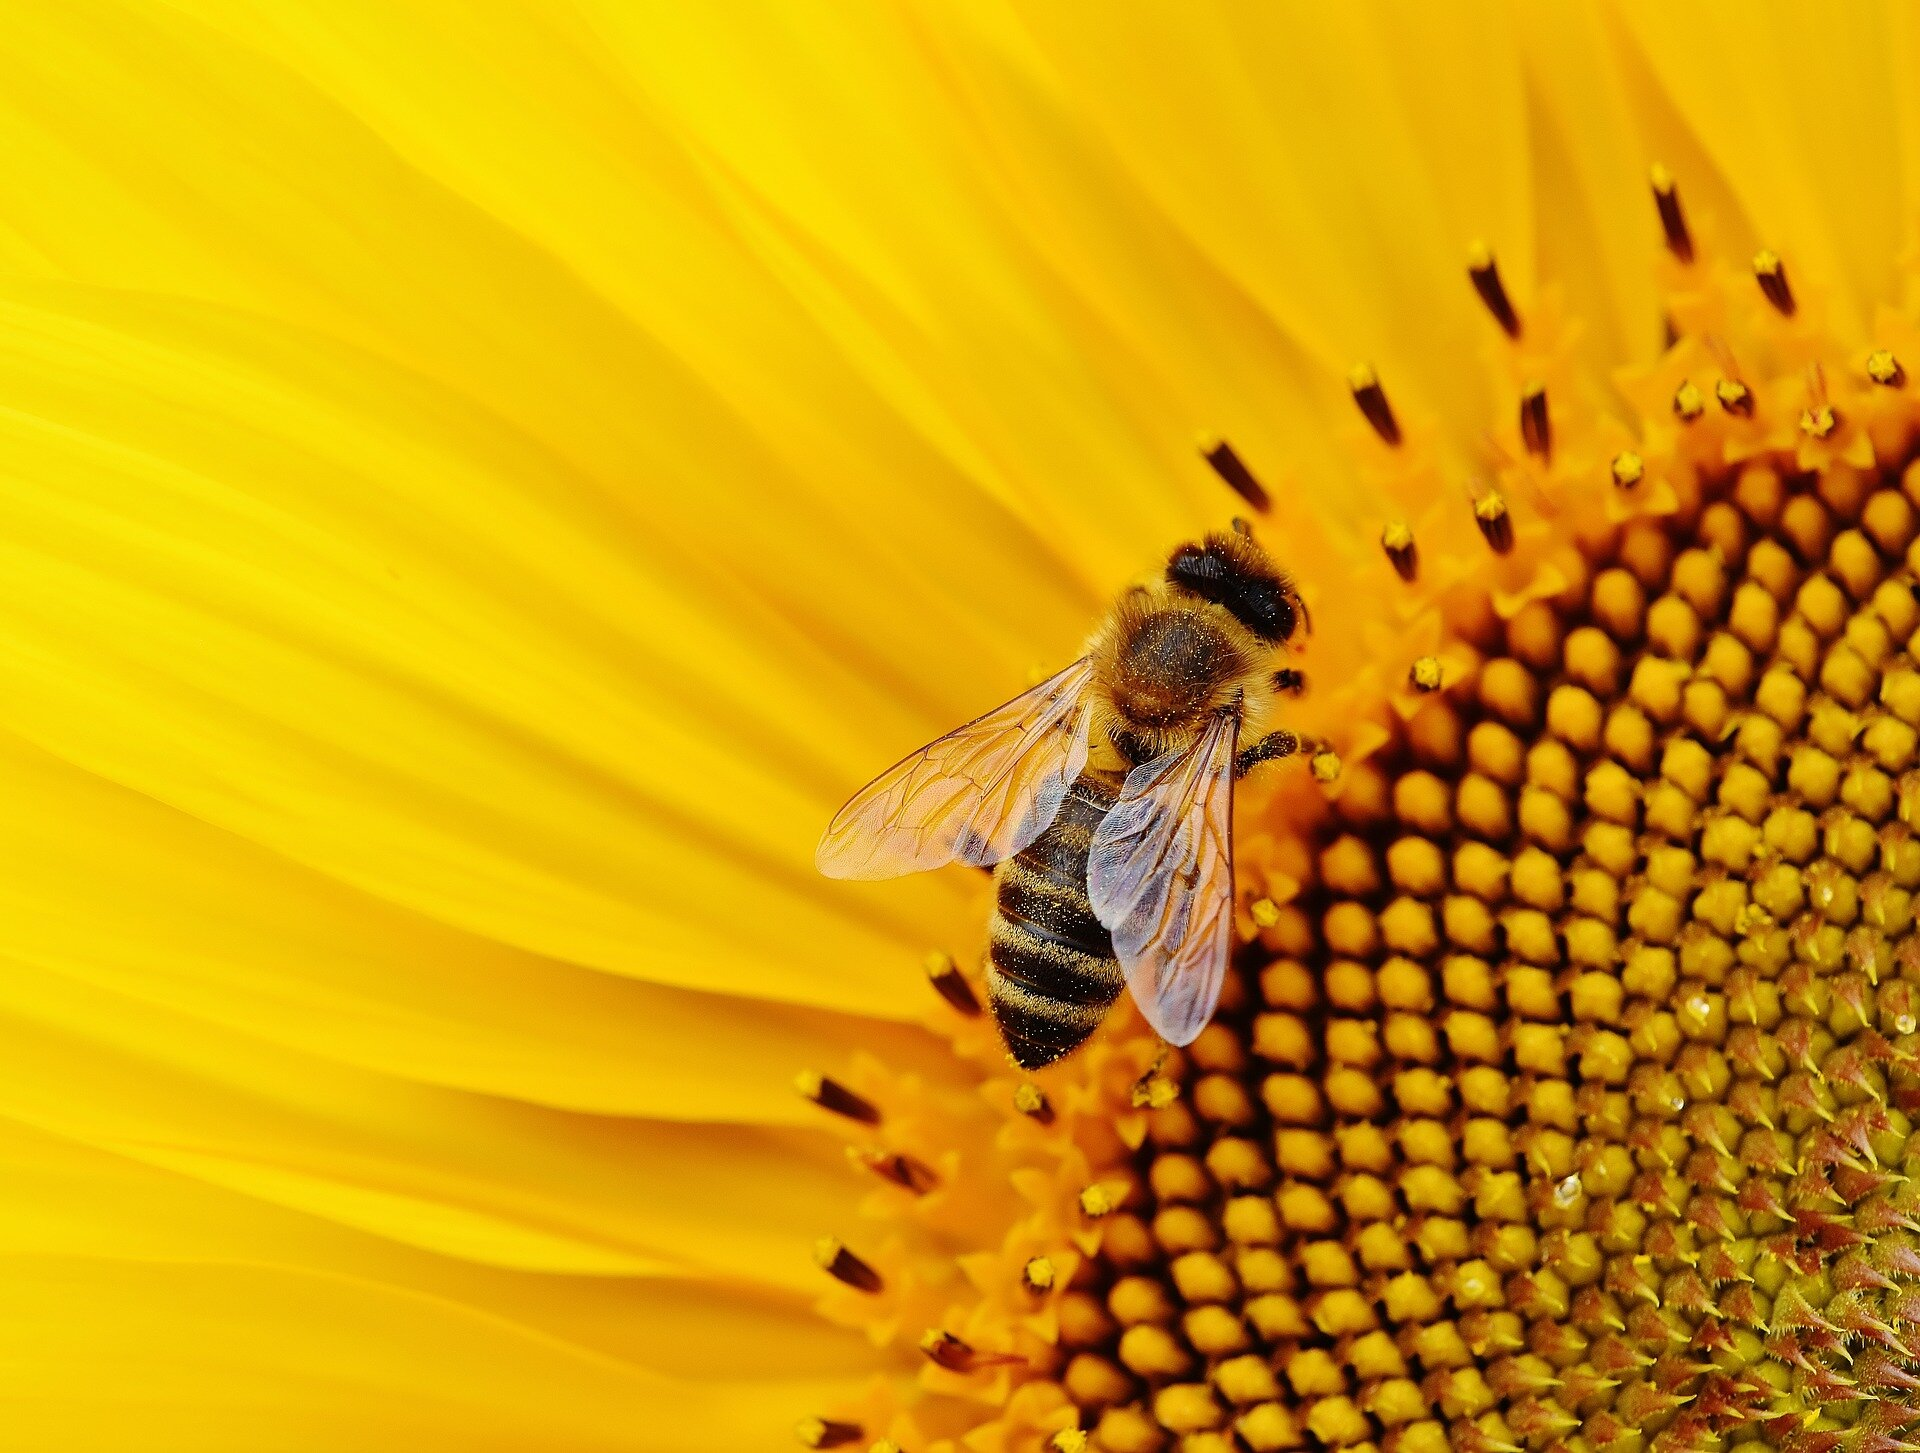 Scientists make fresh call for policy makers to protect pollinators